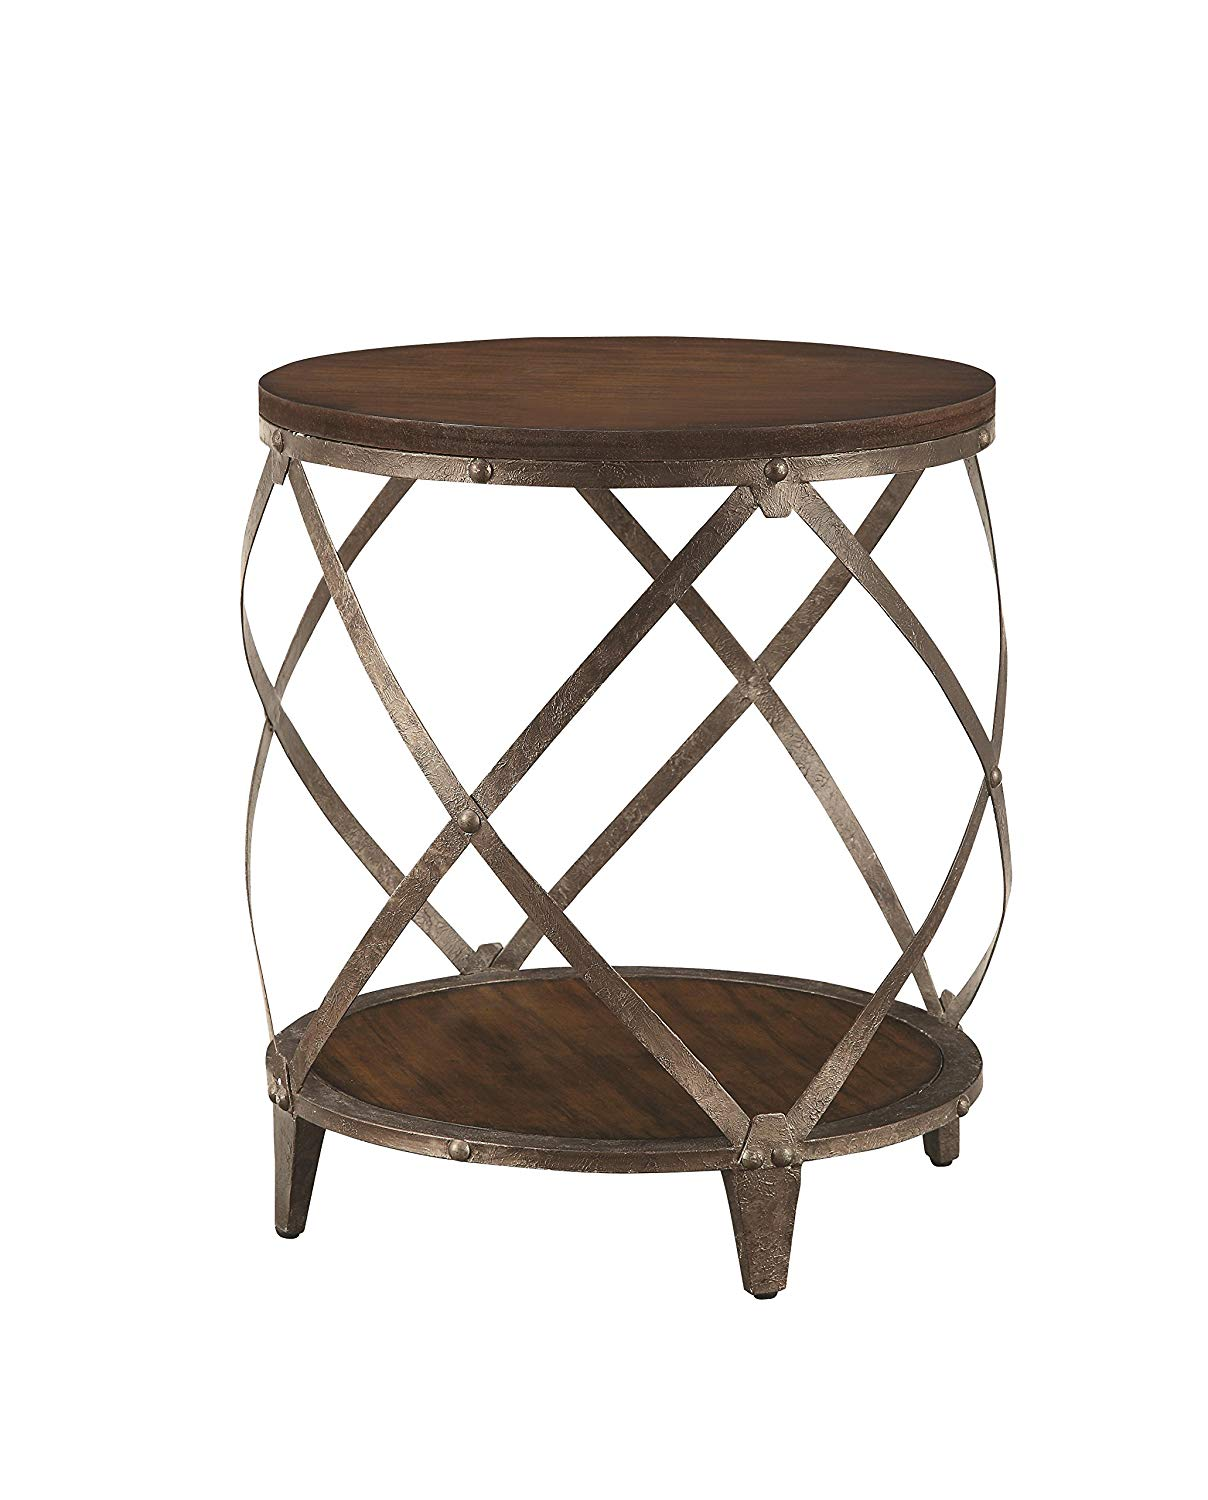 metal accent table with drum shape brown kitchen dining and wood round pedestal end homemade runners inch runner outdoor storage cupboard patio seating sets bunnings pool